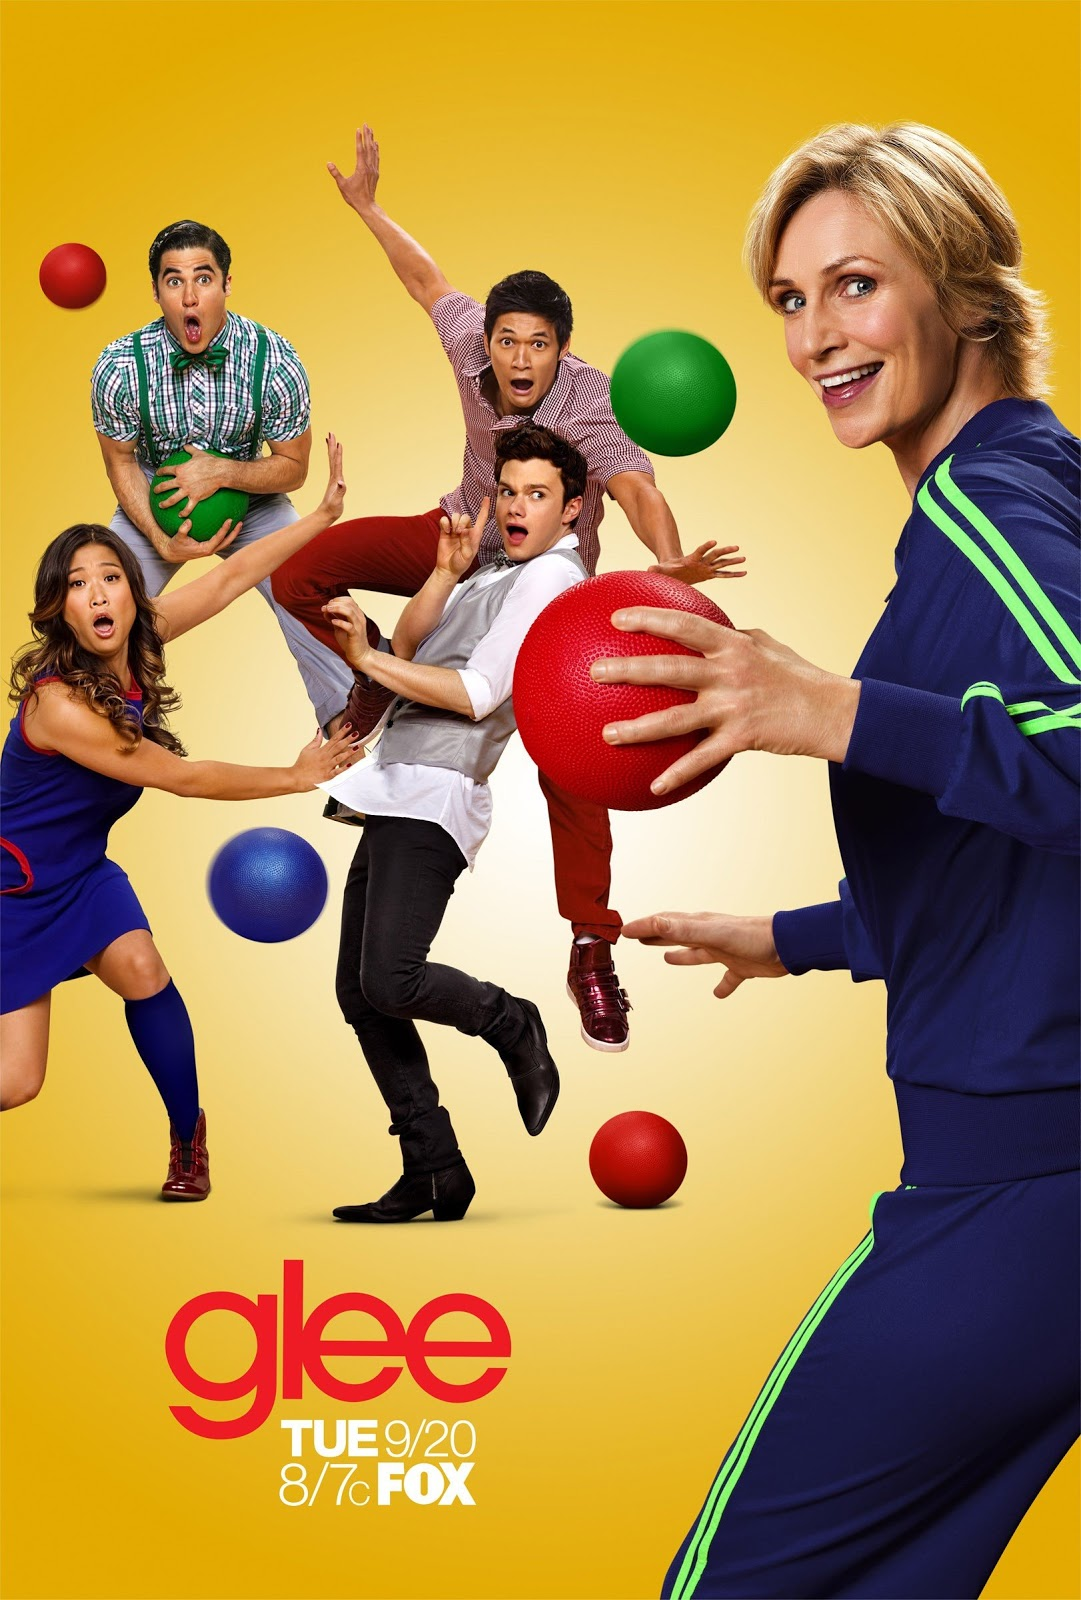 Glee Poster Gallery5   Tv Series Posters and Cast